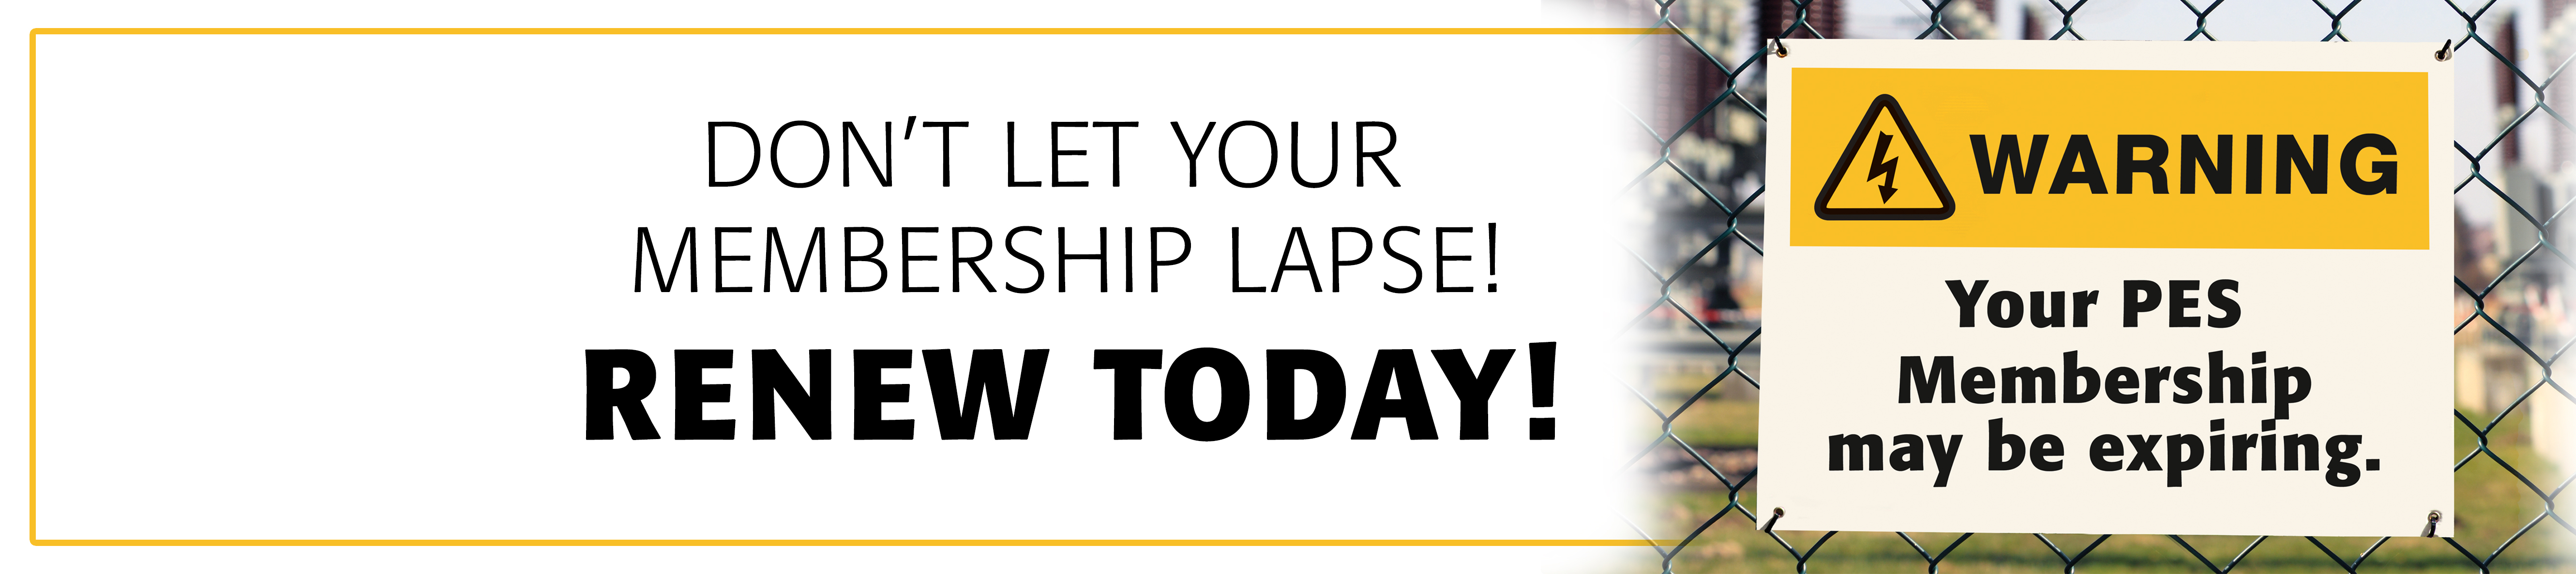 Don't Let Your Membership Lapse! Renew Today!